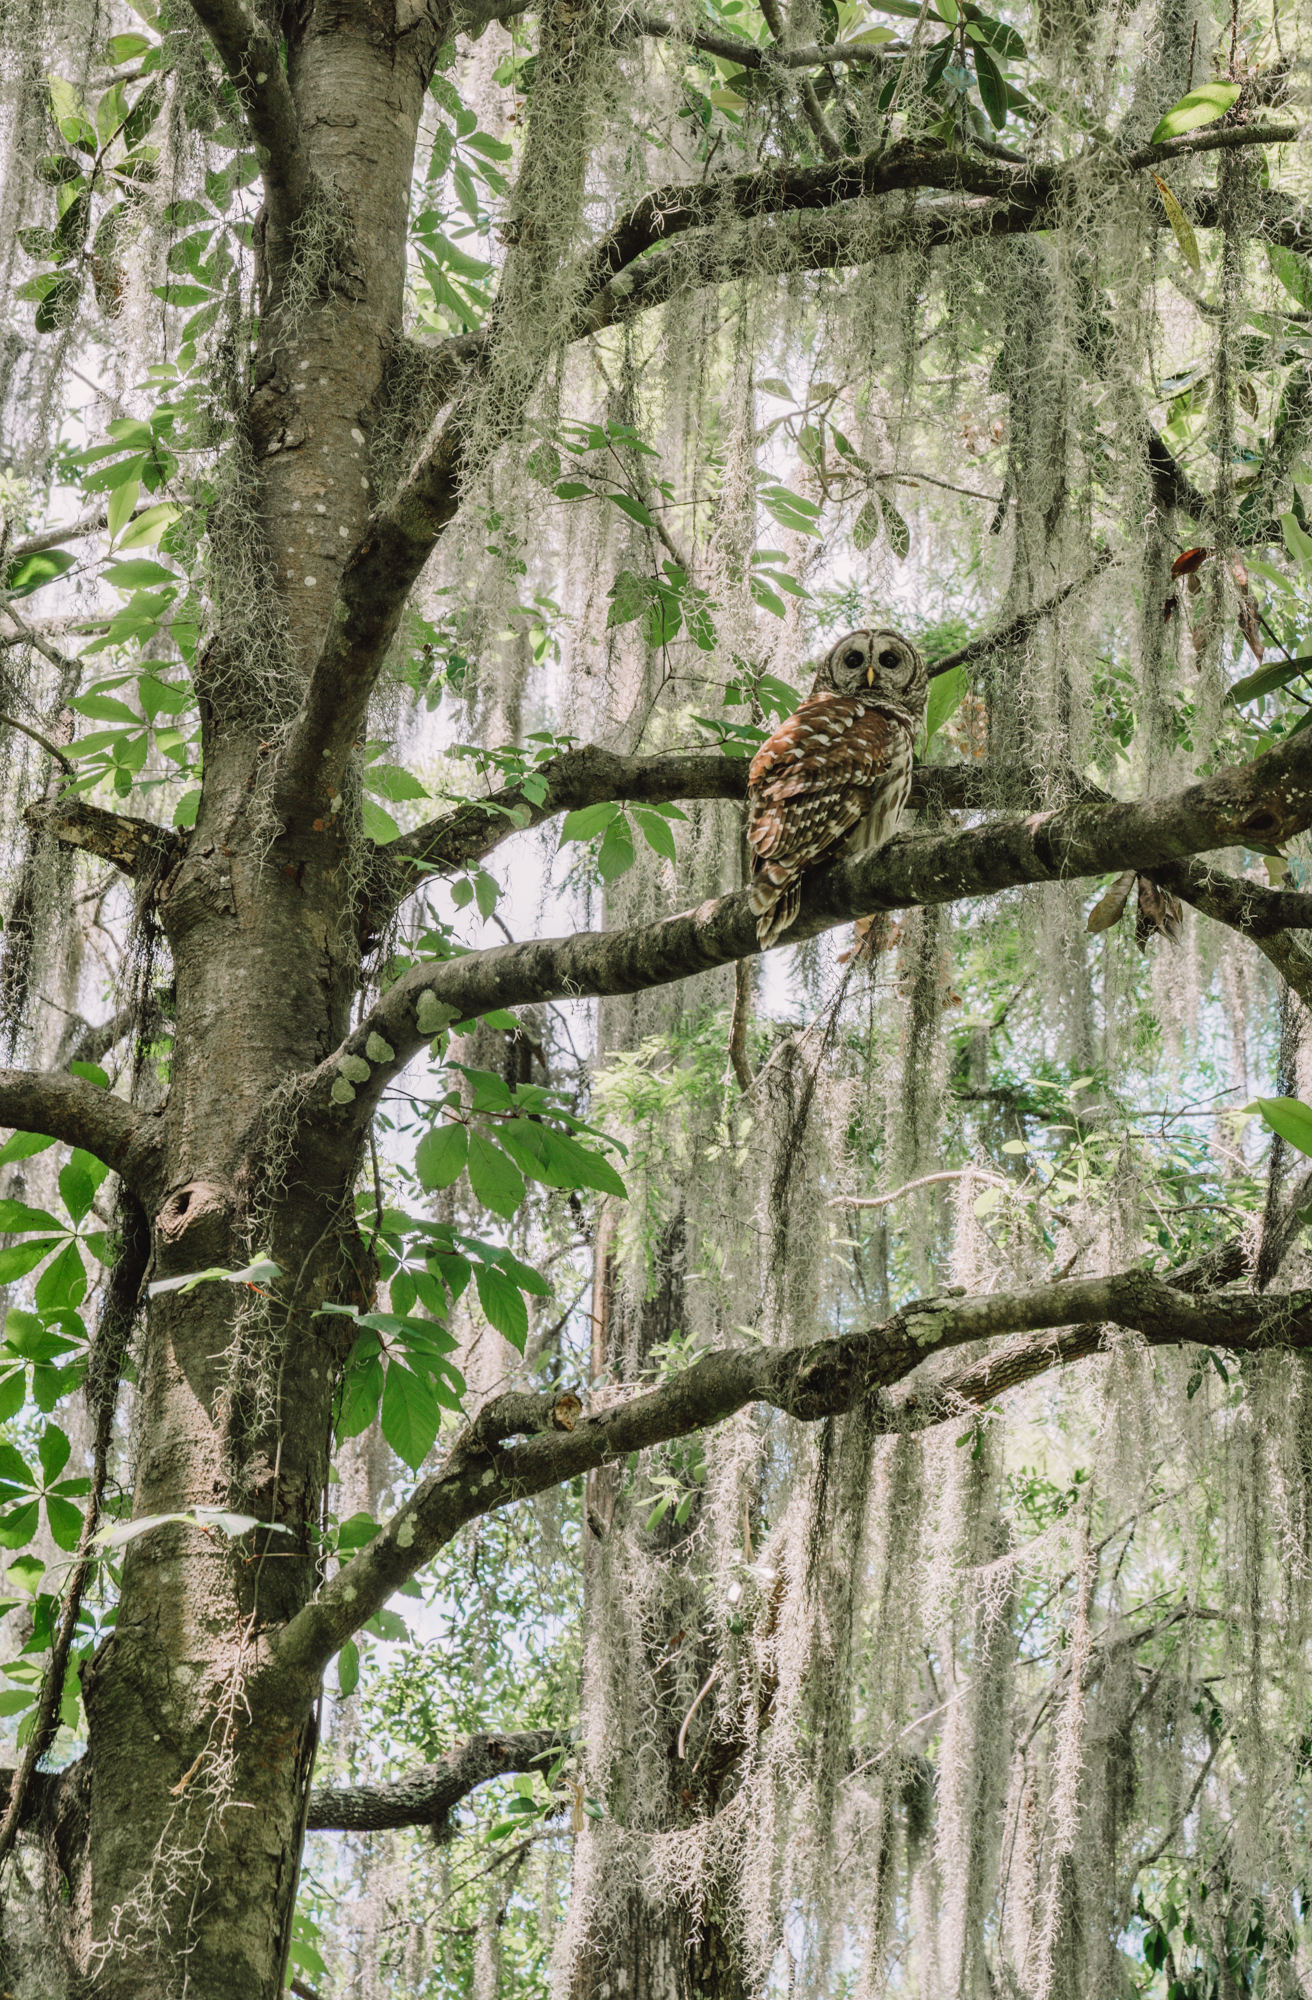 Things to do in charleston sc with kids - a big barn owl looks down from a tree covered in spanish moss.